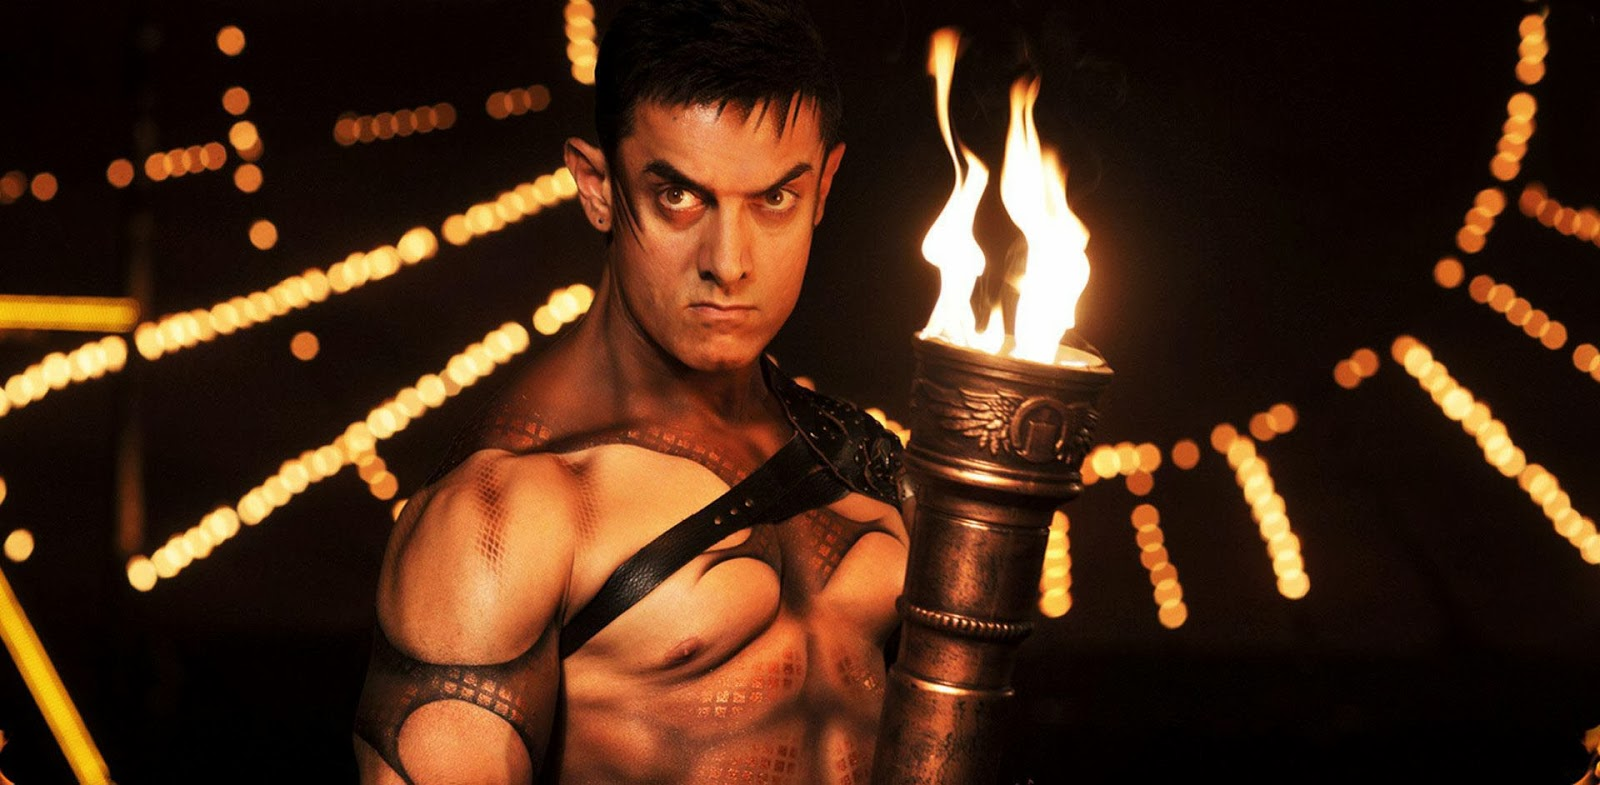 Aamir khan Dhoom3 Movie HD Wallpapers Free Download ...